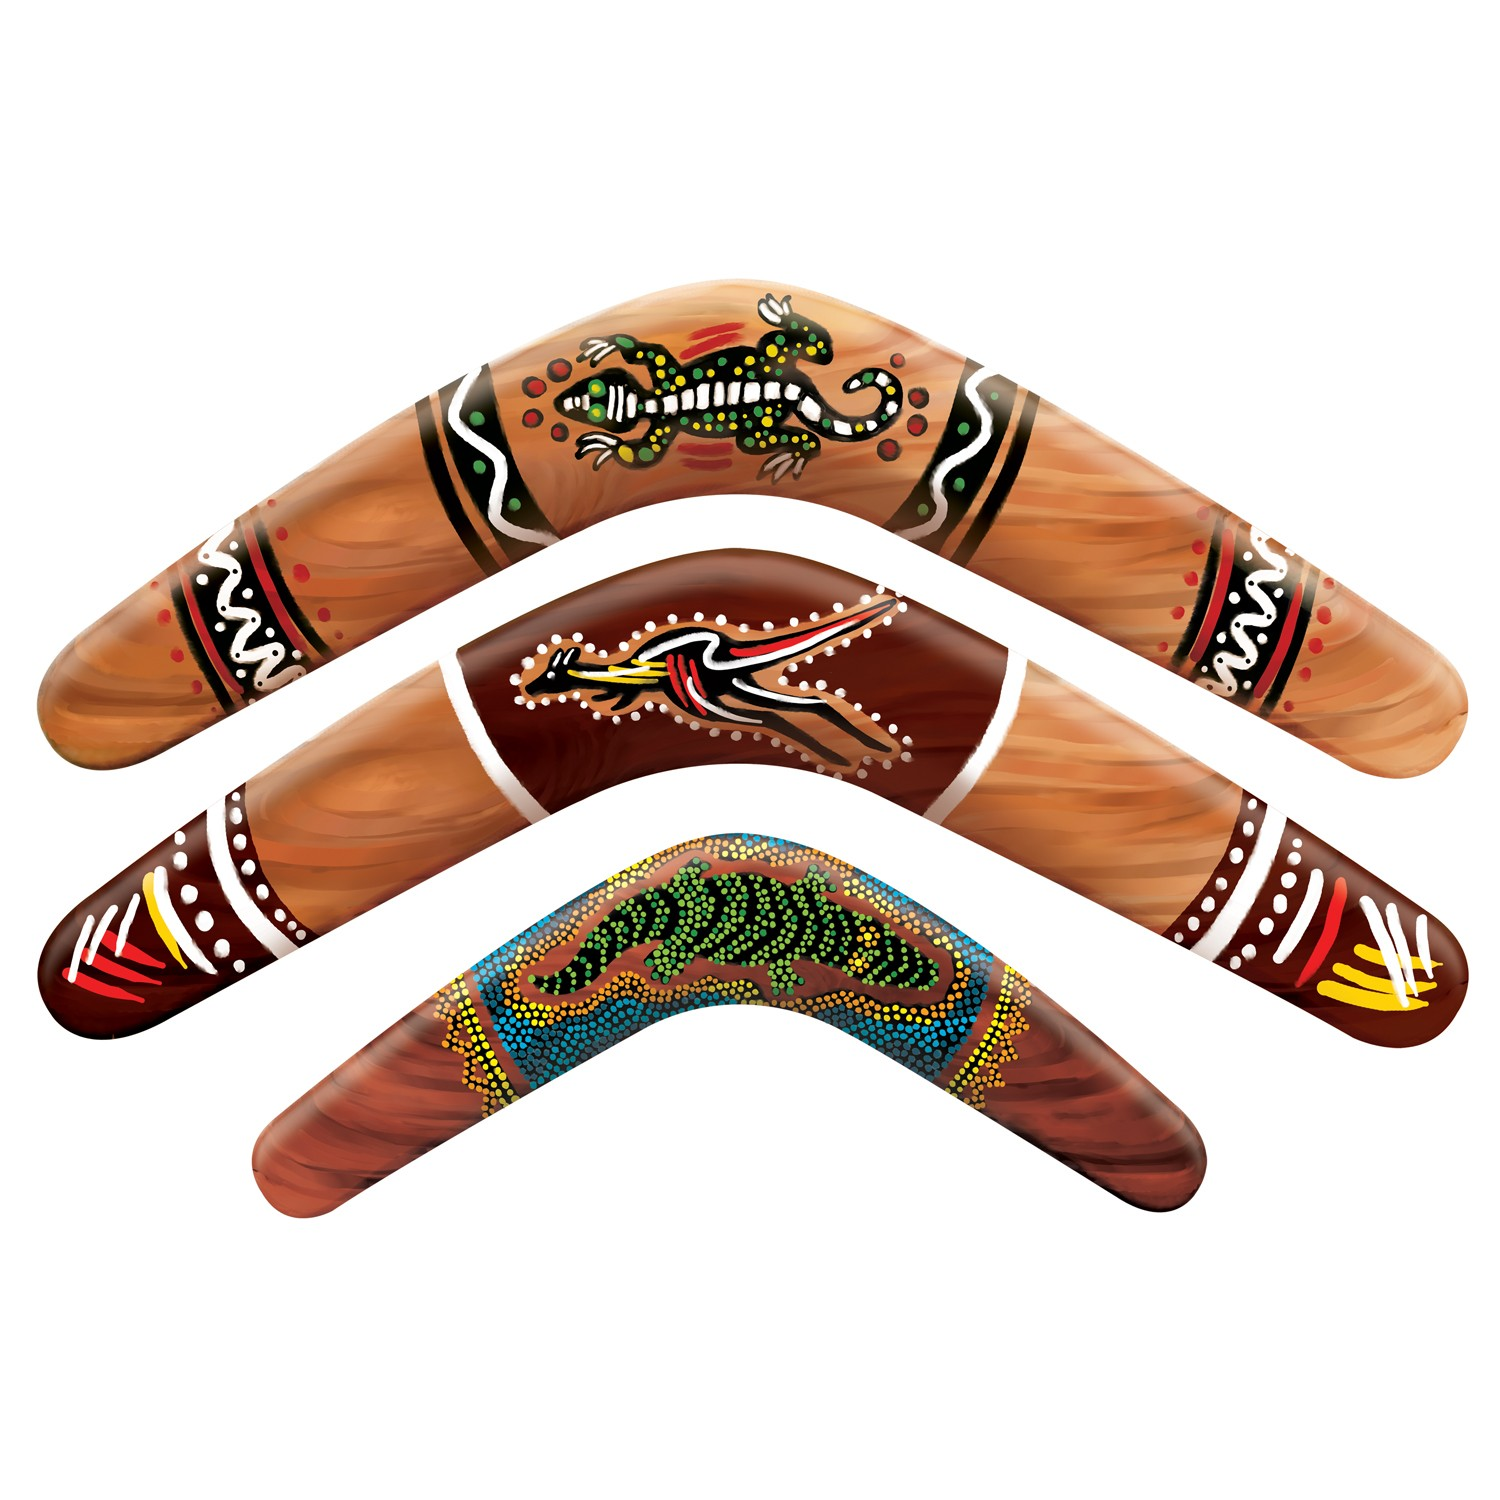 Australia boomerang clipart best for Australian decoration ideas